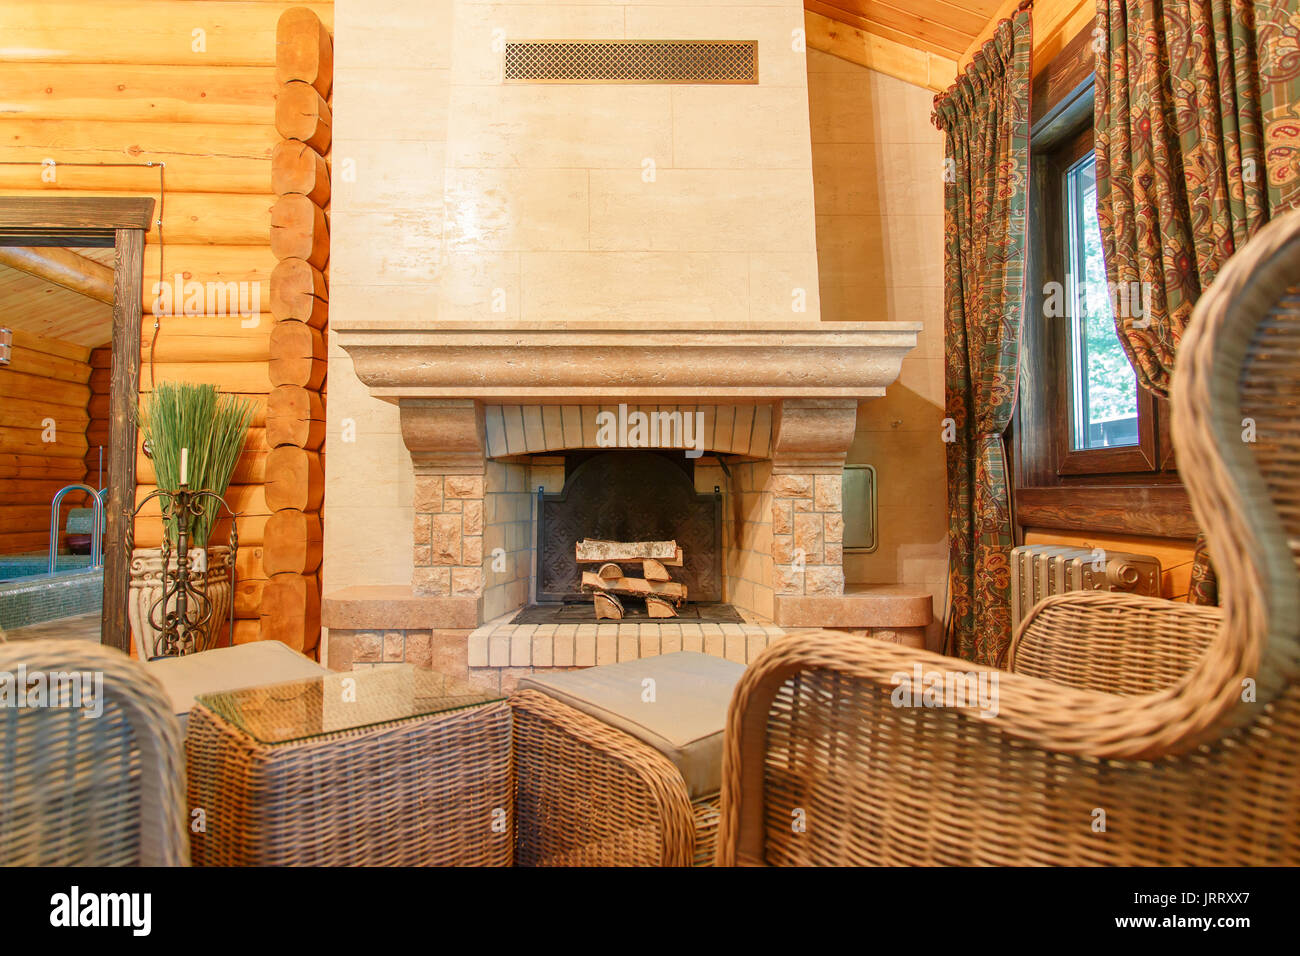 marvellous interior design living room fireplace | Interior design of classic living room with chimney and ...